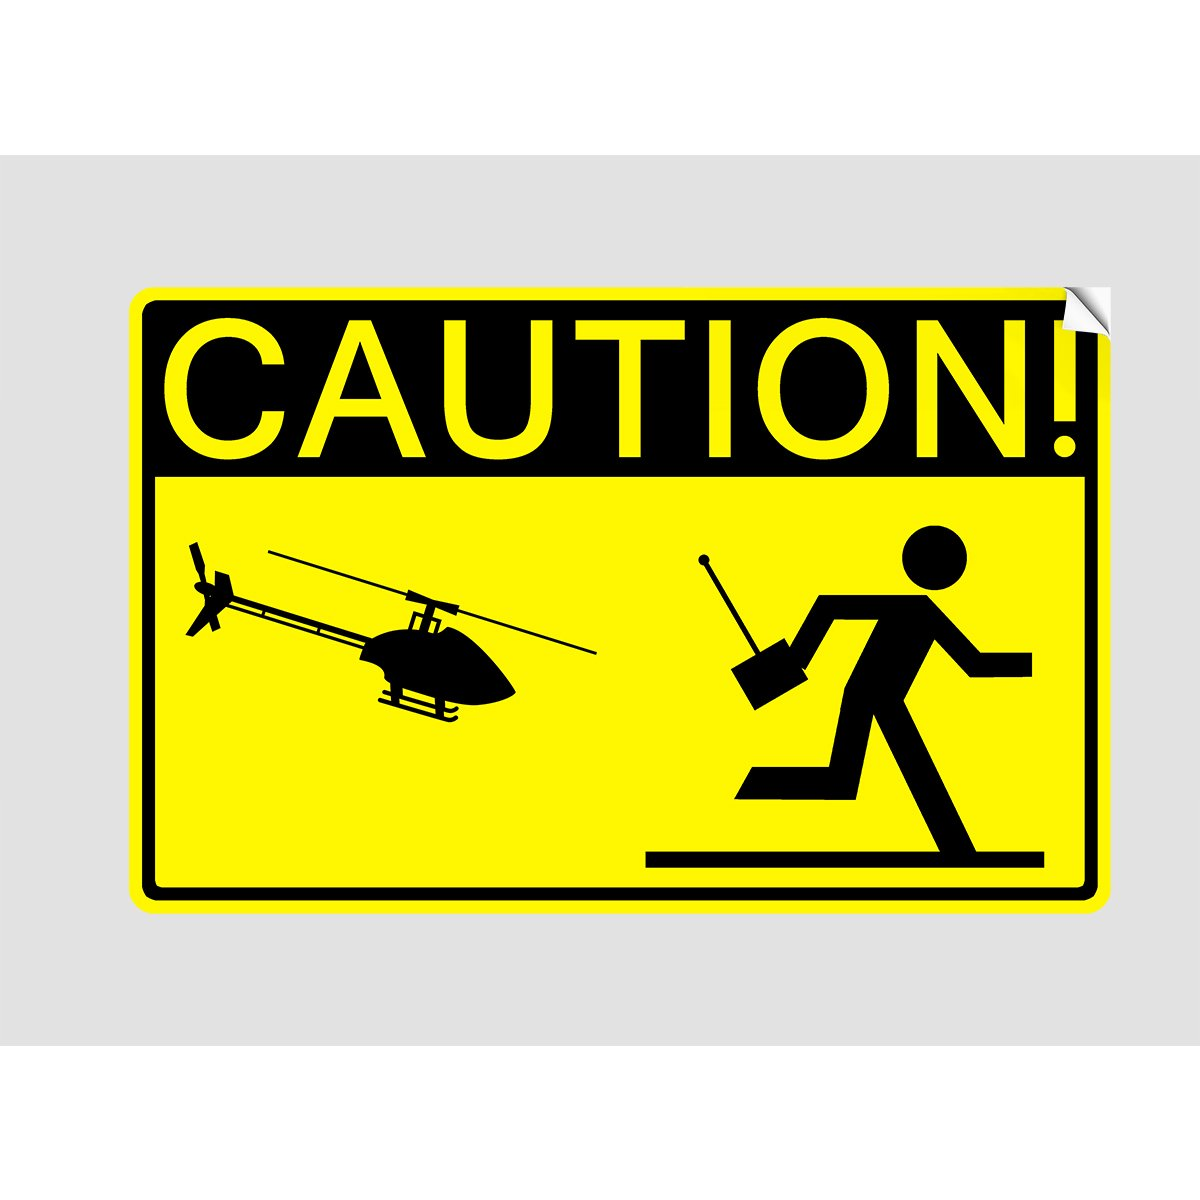 CAUTION! HELICOPTER PILOT Sticker